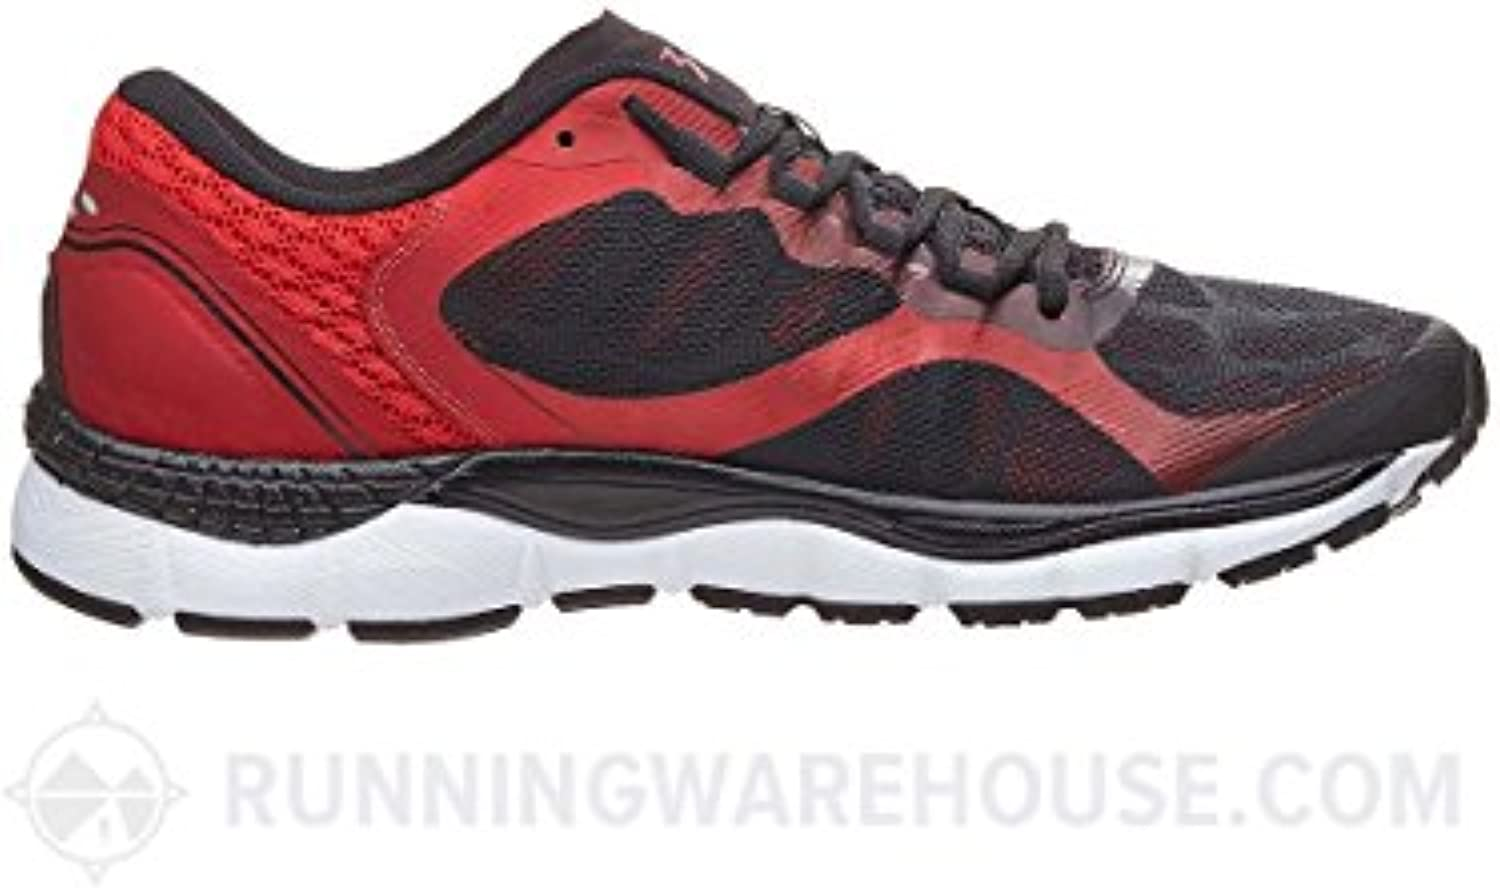 361 Shield 2 black-risk Red Zapato Running Hombre nº 45